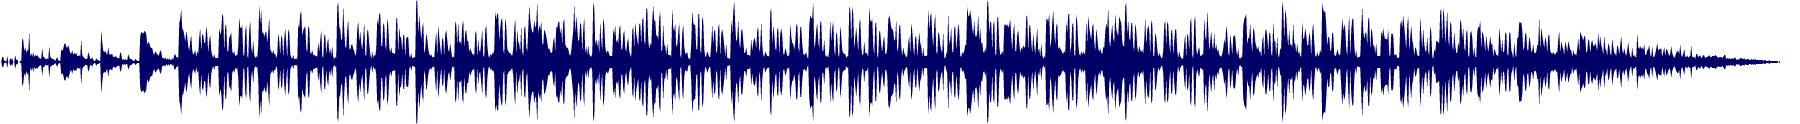 waveform of track #71133